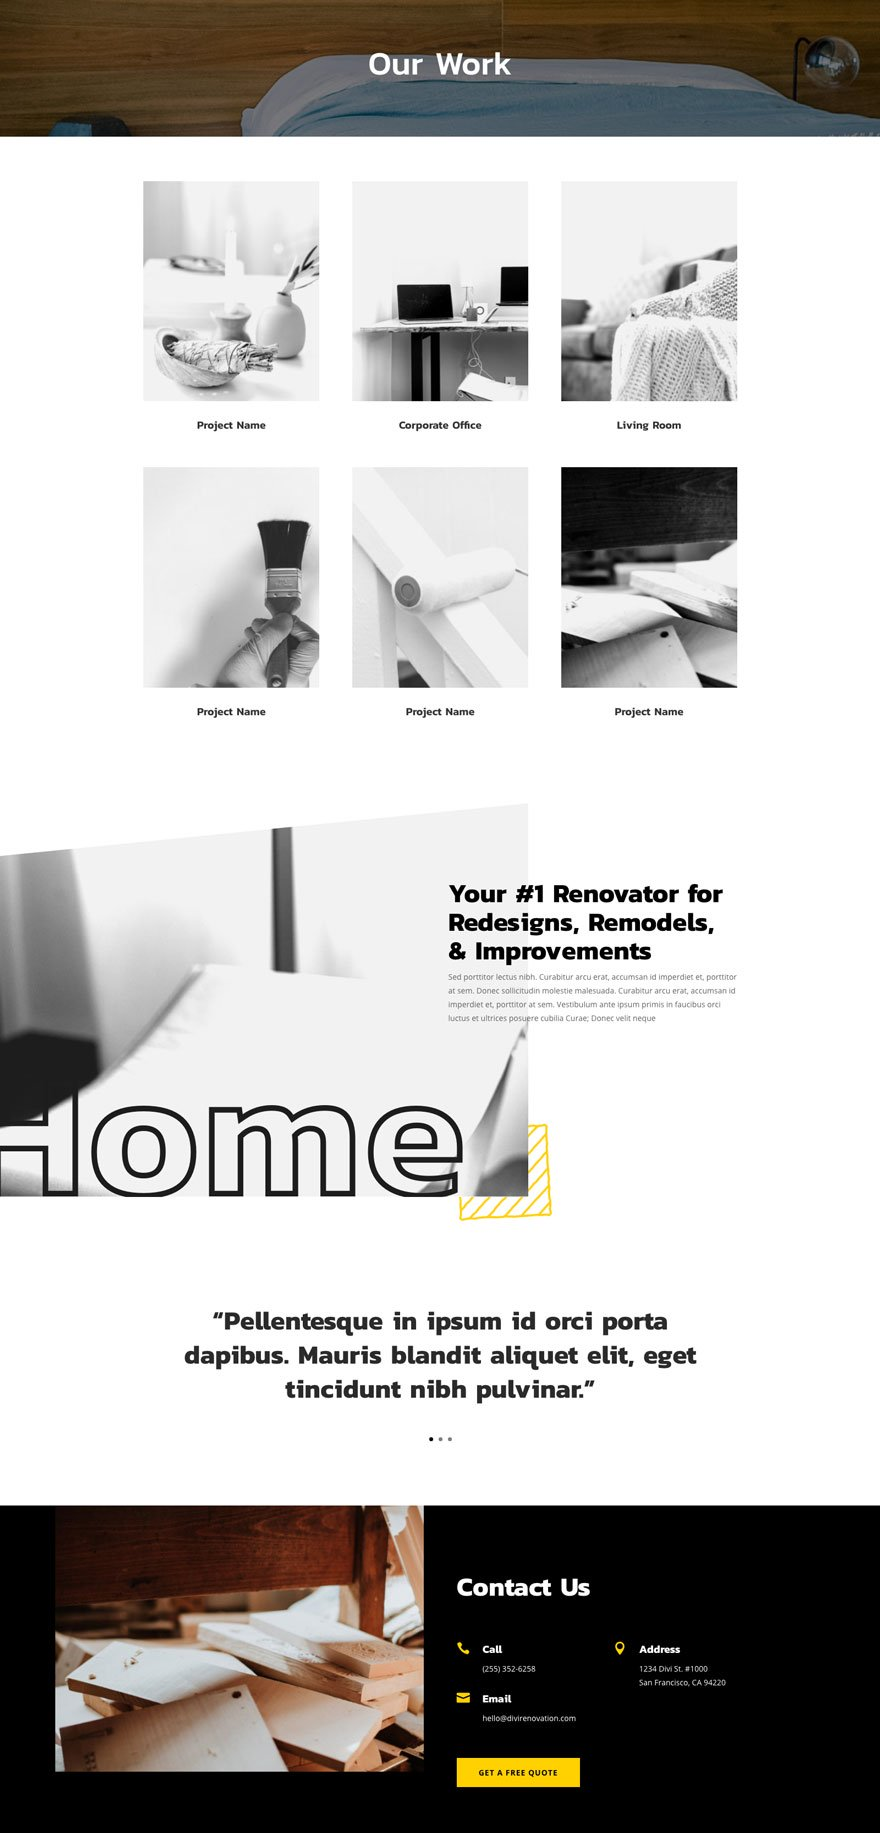 renovation projects page - Renovation Divi Layout By Elegant Themes